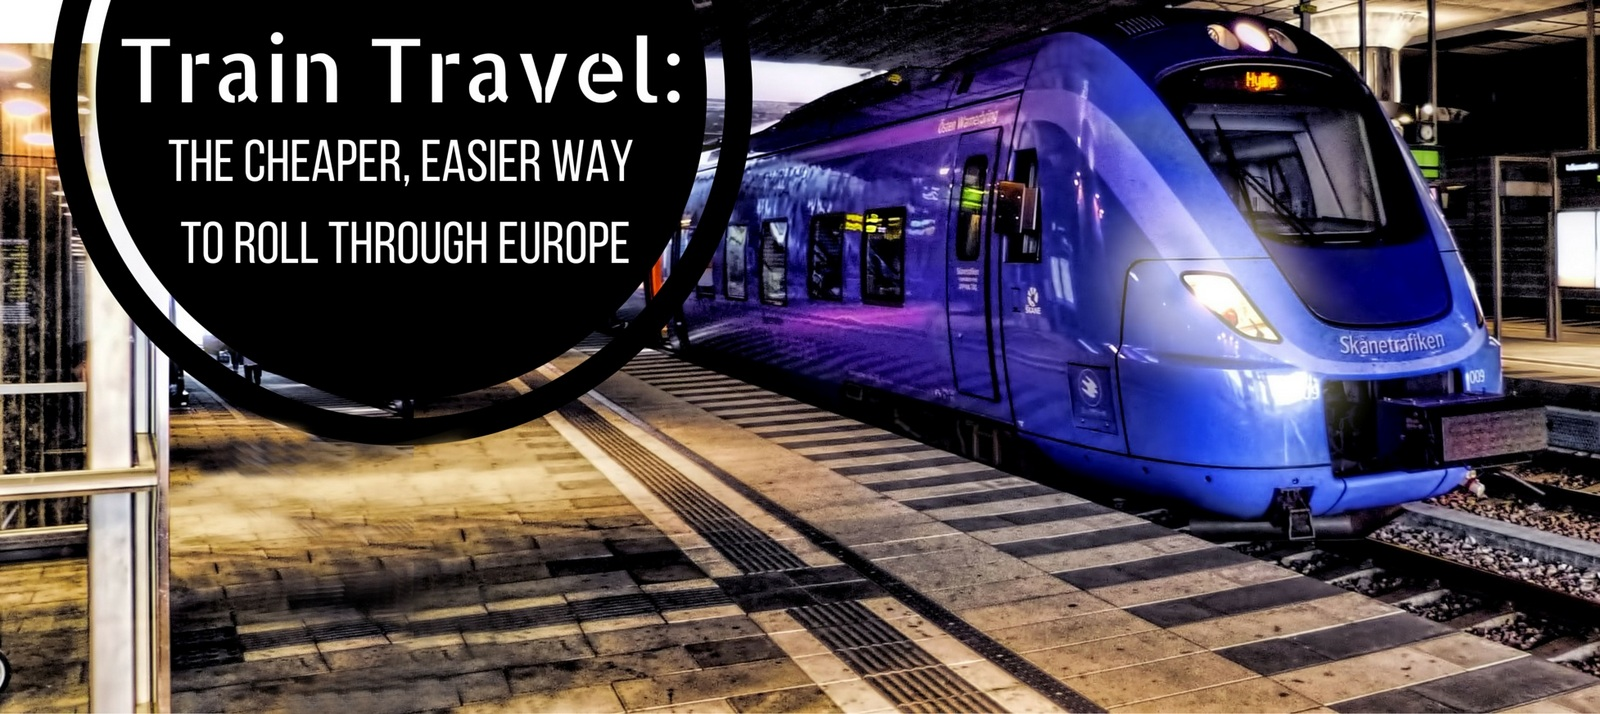 Train Travel: The Cheaper, Easier Way to Roll Through Europe - Mapping Megan